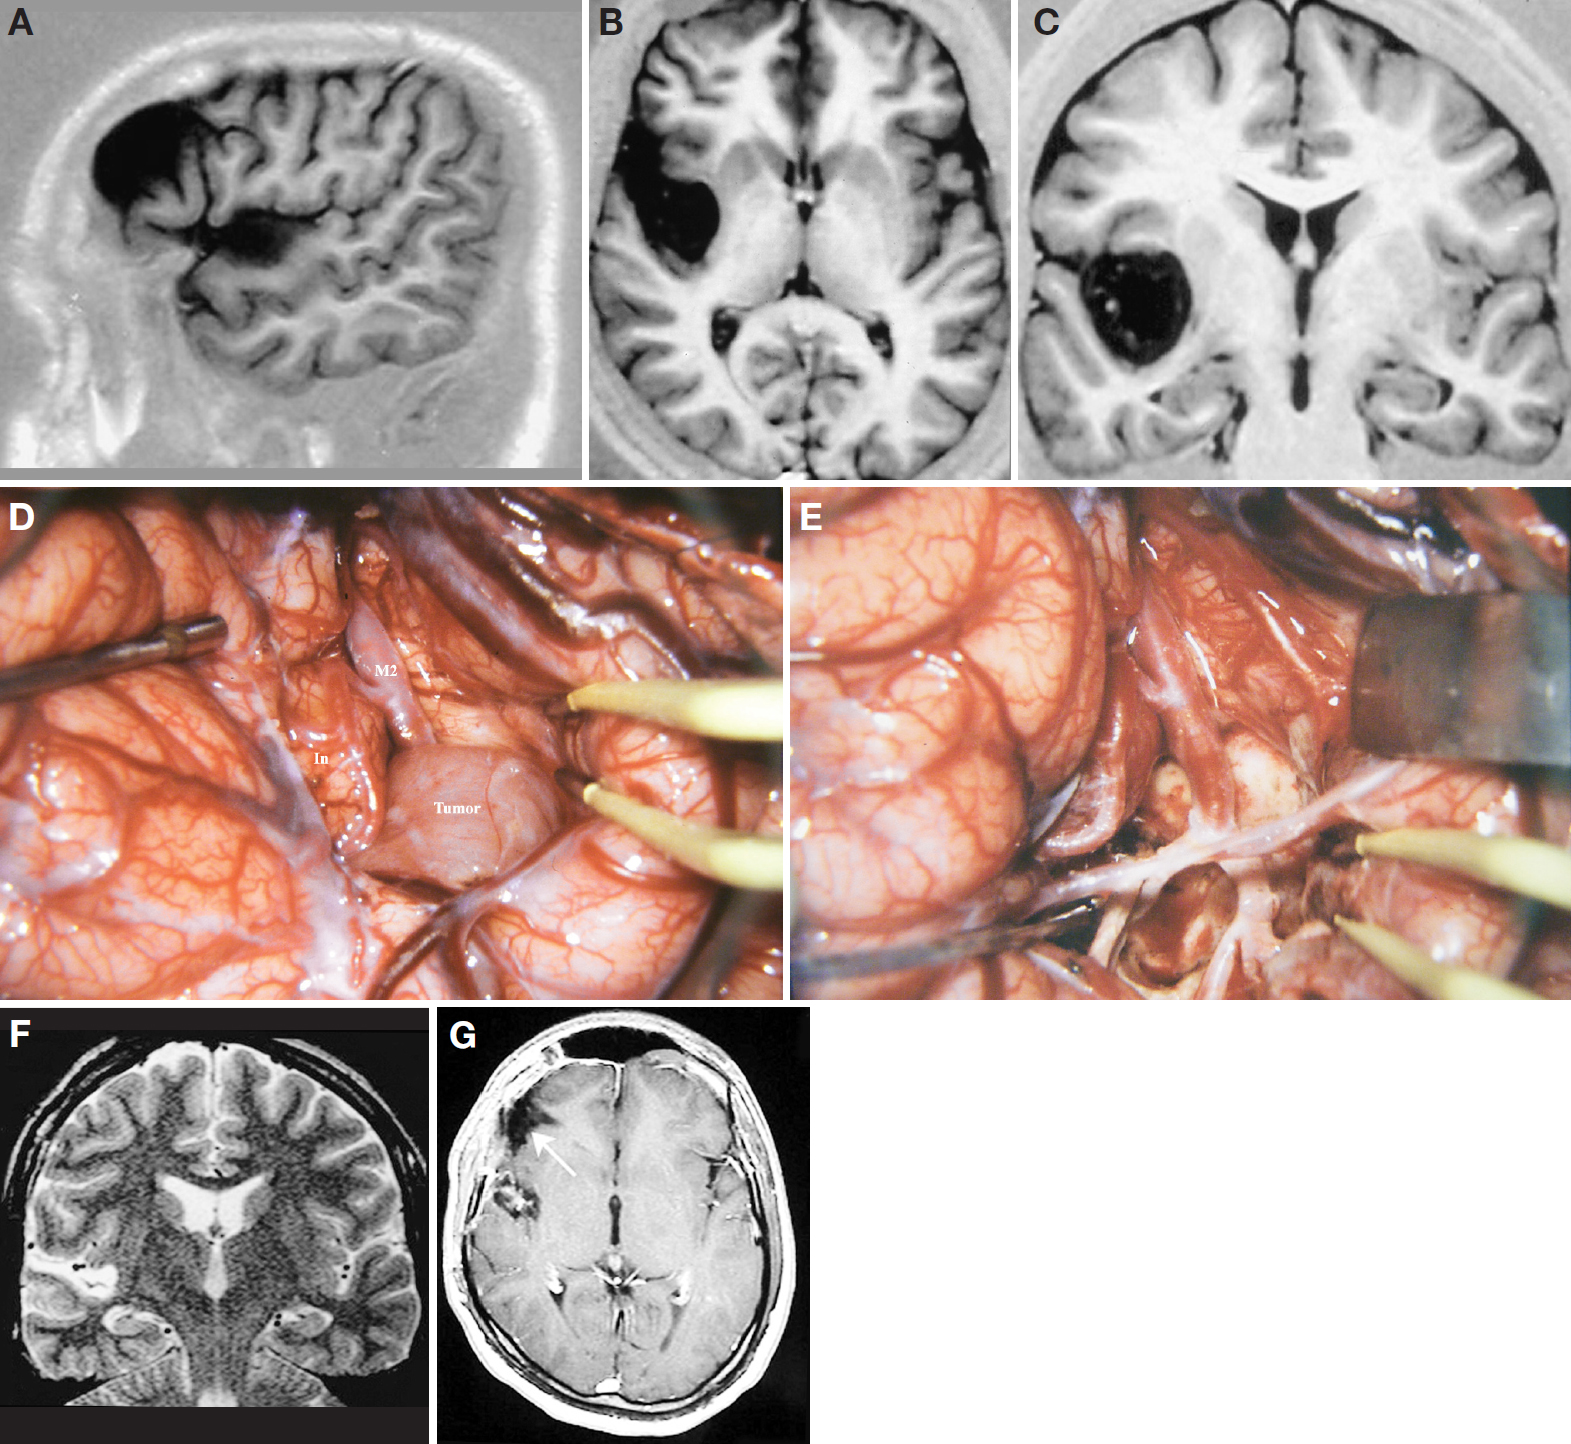 Figure 17. A, sagittal MRI scan of the right hemisphere, depicting an insular tumor and a frontal arachnoidal cyst. B, axial MRI scan. The tumor occupies the posterior two-thirds of the insula, sparing the first 2 short gyri (anterior and middle short gyri) and also sparing the posterior long gyrus. The tumor is limited medially by the lentiform nucleus. C, coronal MRI scan. The superior limit of the tumor is located at the same level of the lateral opercular compartment of the sylvian fissure. D, surgical exposure after an extended right pterional craniotomy, followed by the dural opening and the sylvian fissure splitting. M2, insular segment of the MCA; In, insula. Note that the tumor has encased the MCA. E, final aspect of the brain after tumor removal. The branches of the MCA were preserved. The whitish color of the arteries was owing to frequent application of the papaverine to prevent vasospasm. F, postoperative coronal MRI scan performed 8 months after surgery. G, postoperative axial MRI scan performed 8 months after surgery. The arrow indicates the frontal resection. (Images courtesy of AL Rhoton, Jr.)